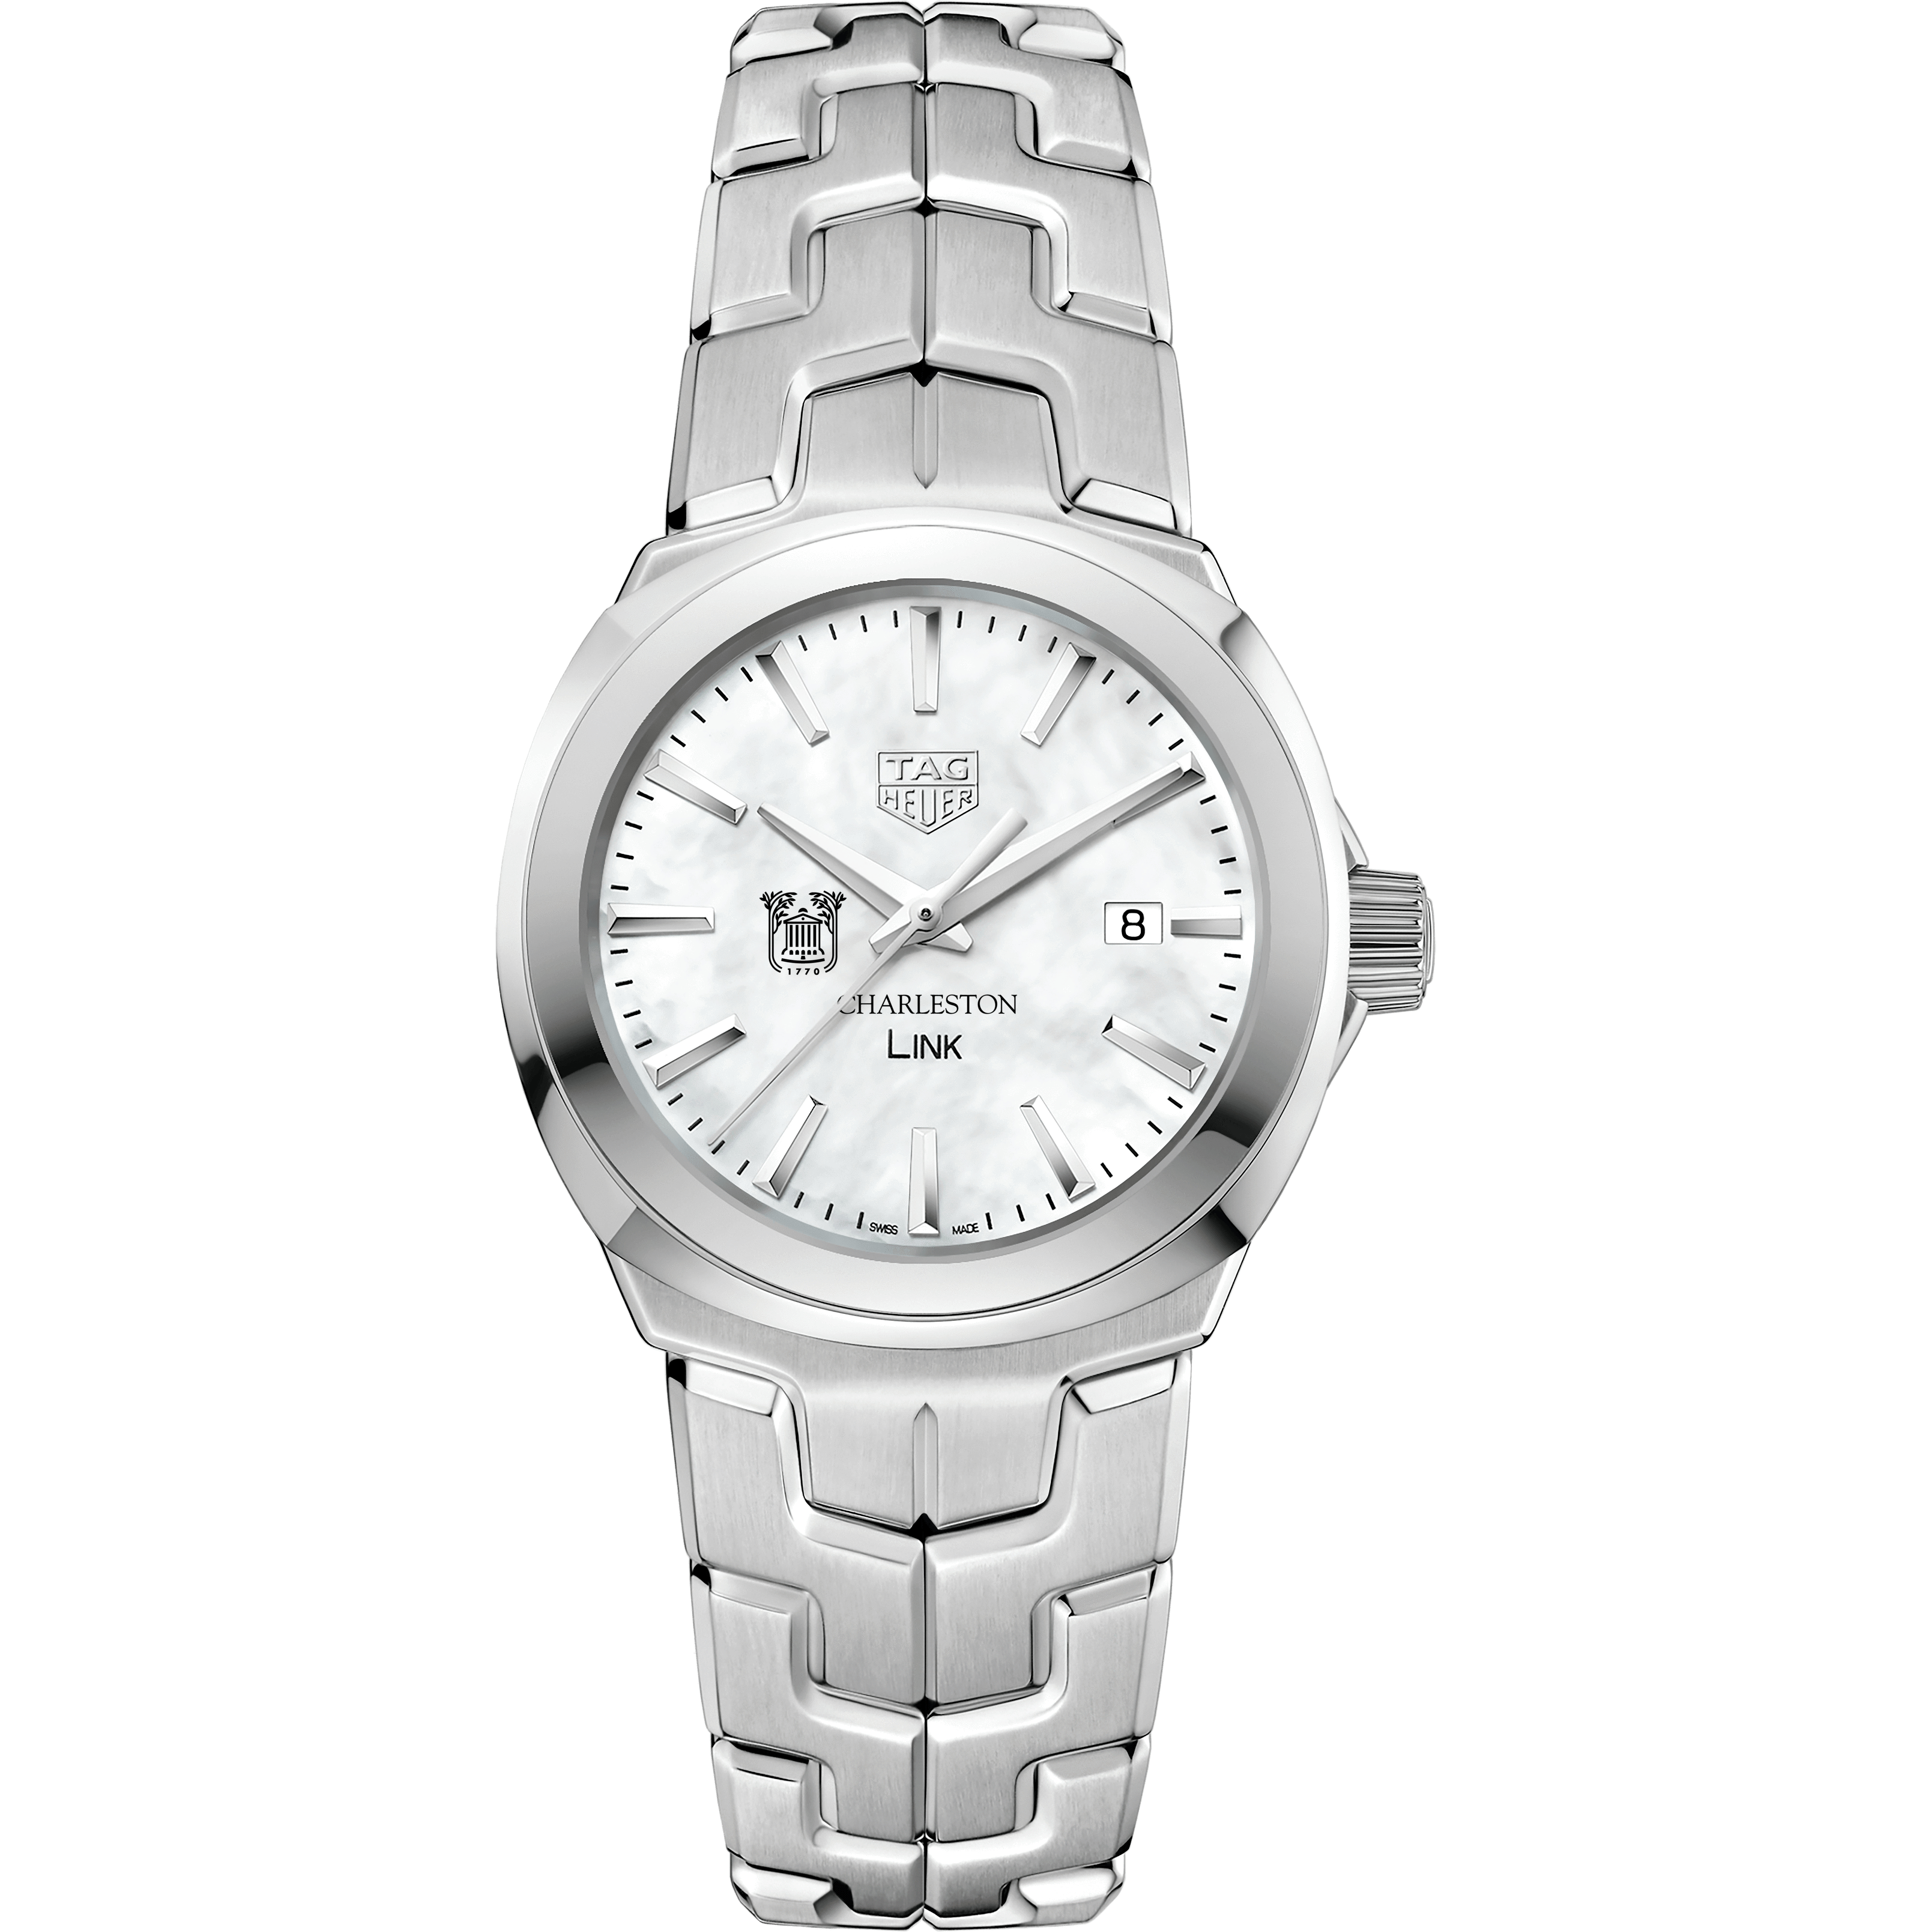 College of Charleston TAG Heuer LINK for Women - Image 2